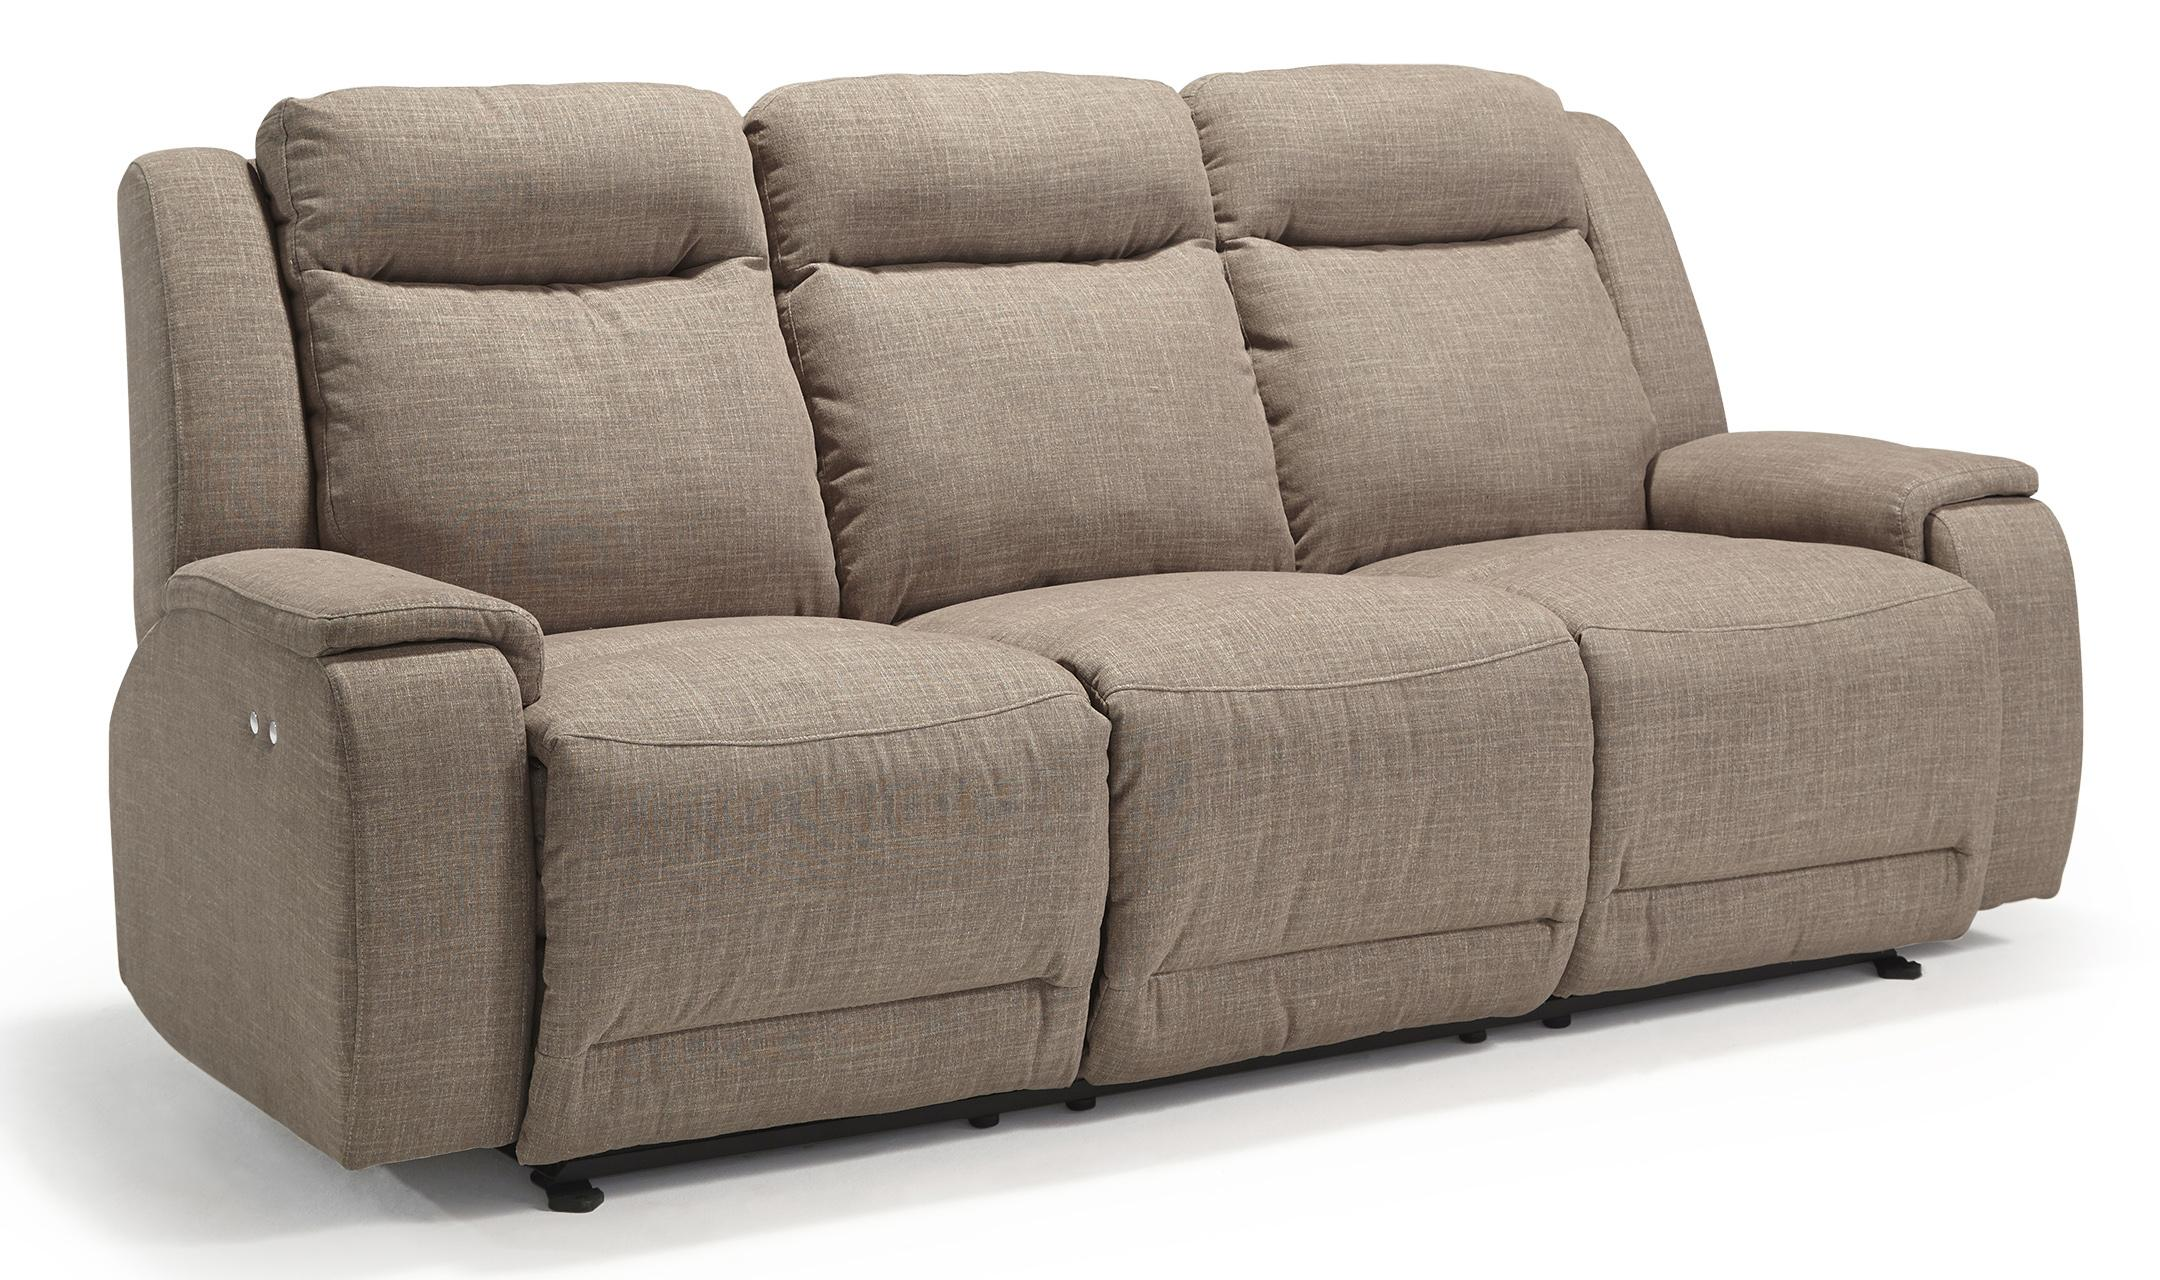 Best Home Furnishings Hardisty Power Reclining Sofa - Item Number: S680UP4-24699